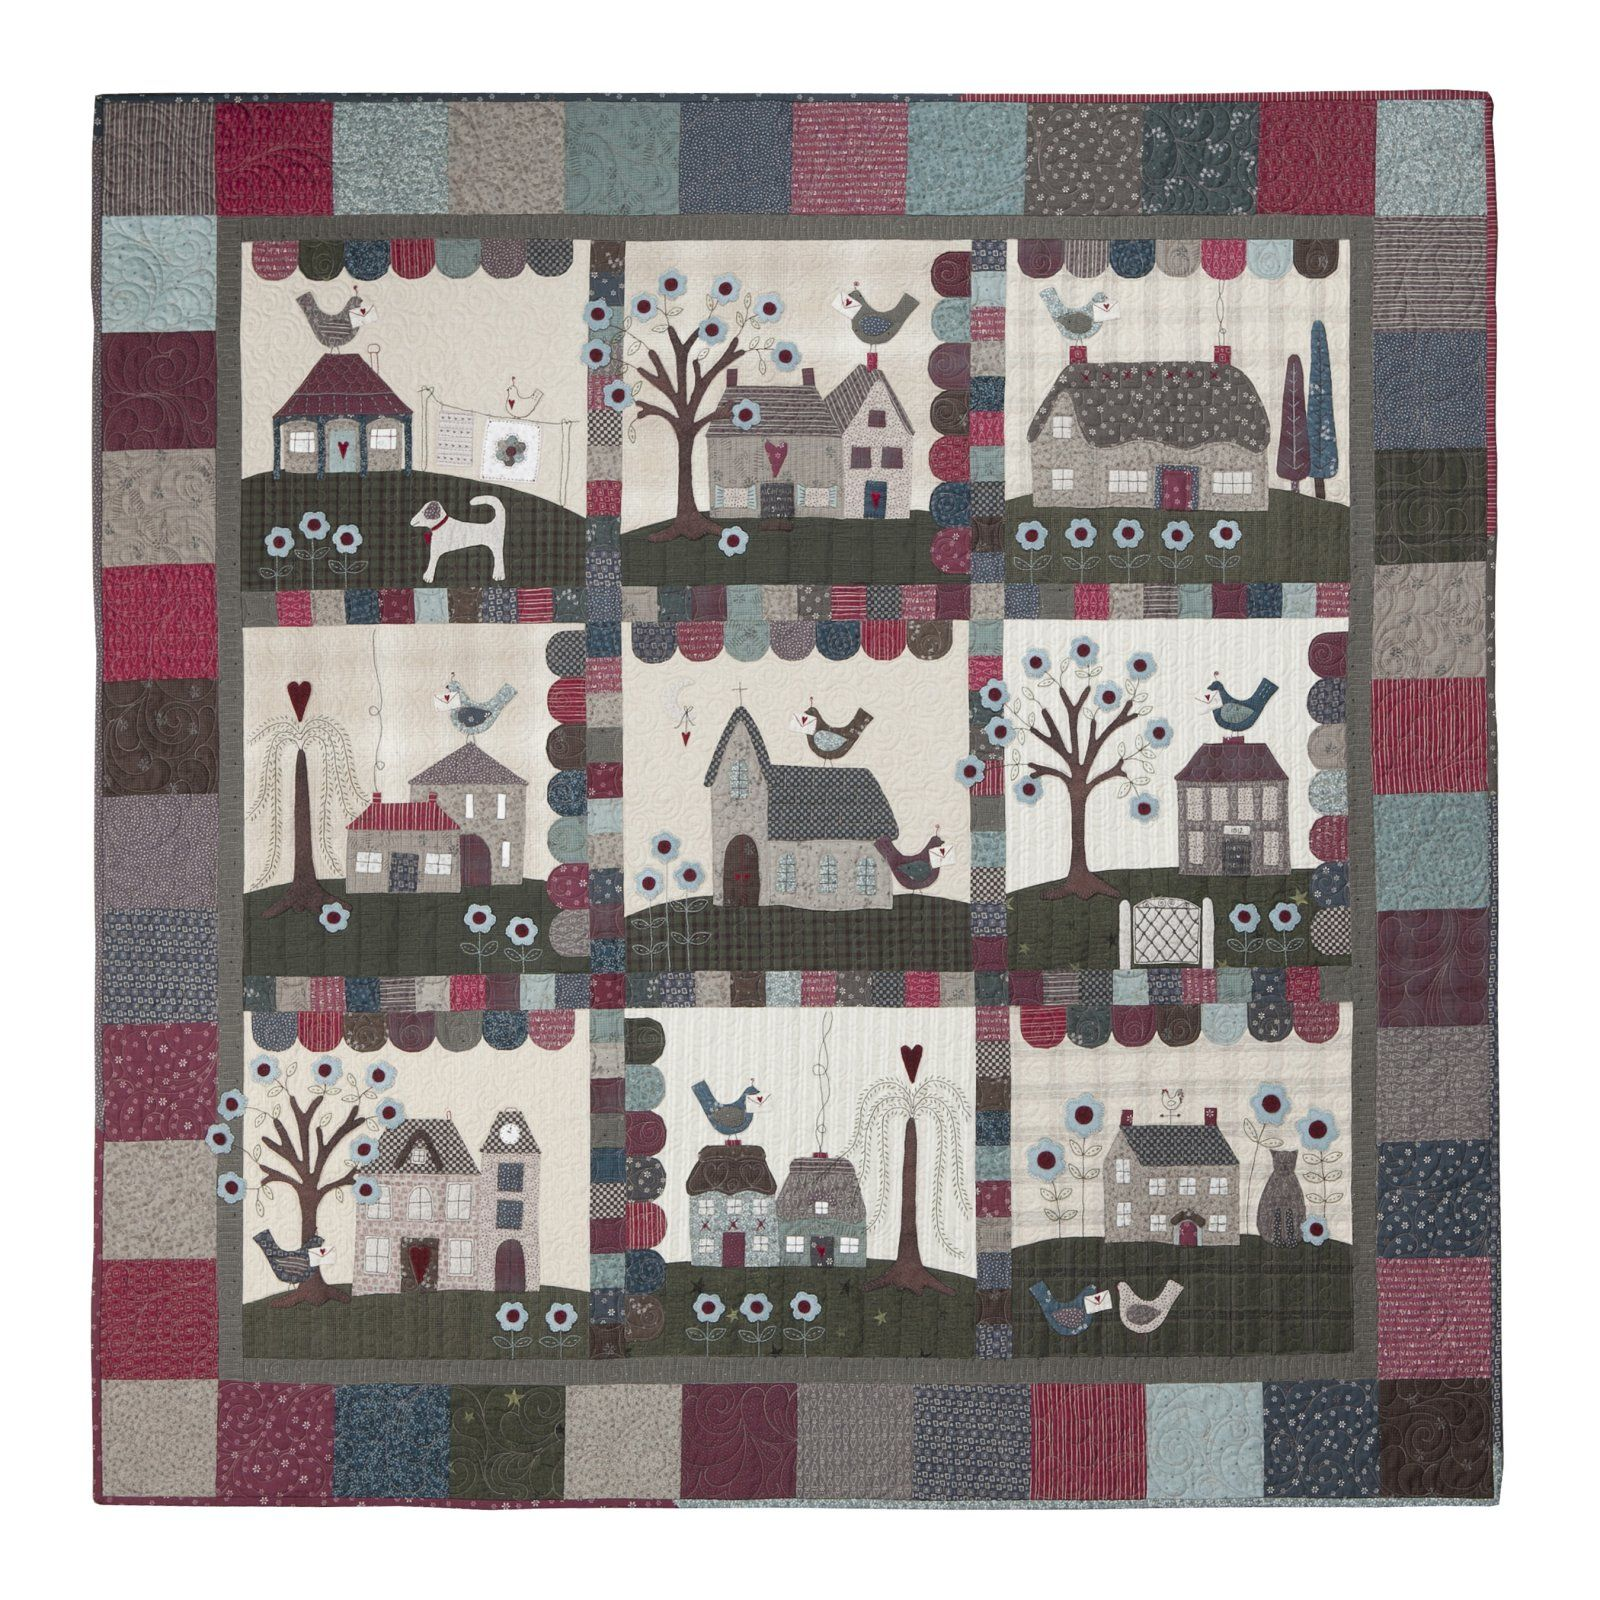 Lynette anderson love letters quilt stuff to buy pinterest lynette anderson love letters quilt spiritdancerdesigns Images